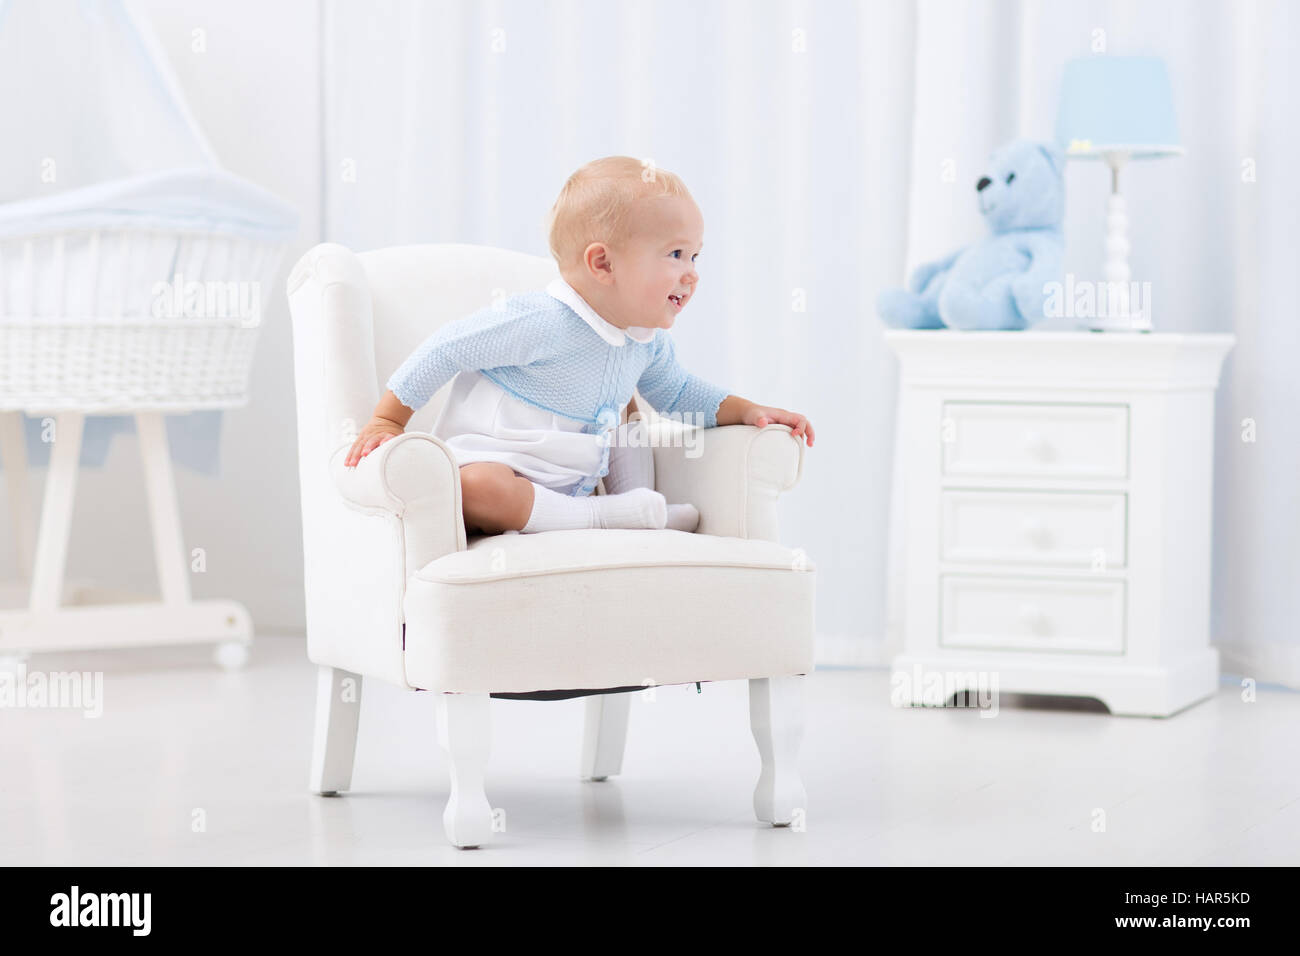 Infant Learning Chair First Steps Of Baby Boy Learning To Walk In White Sunny